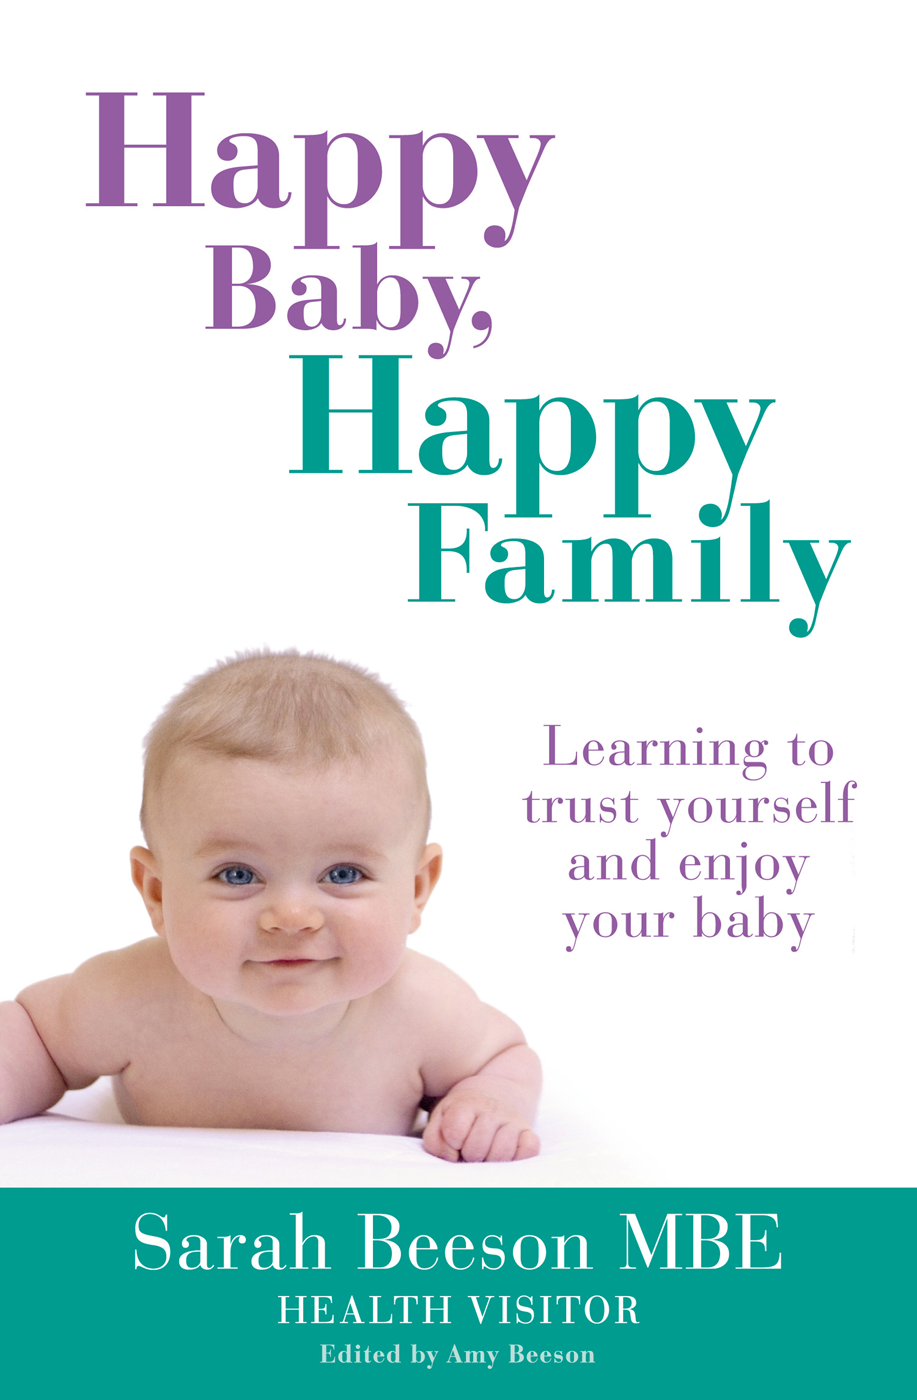 Sarah Beeson - Happy Baby, Happy Family: Learning to trust yourself and enjoy your baby